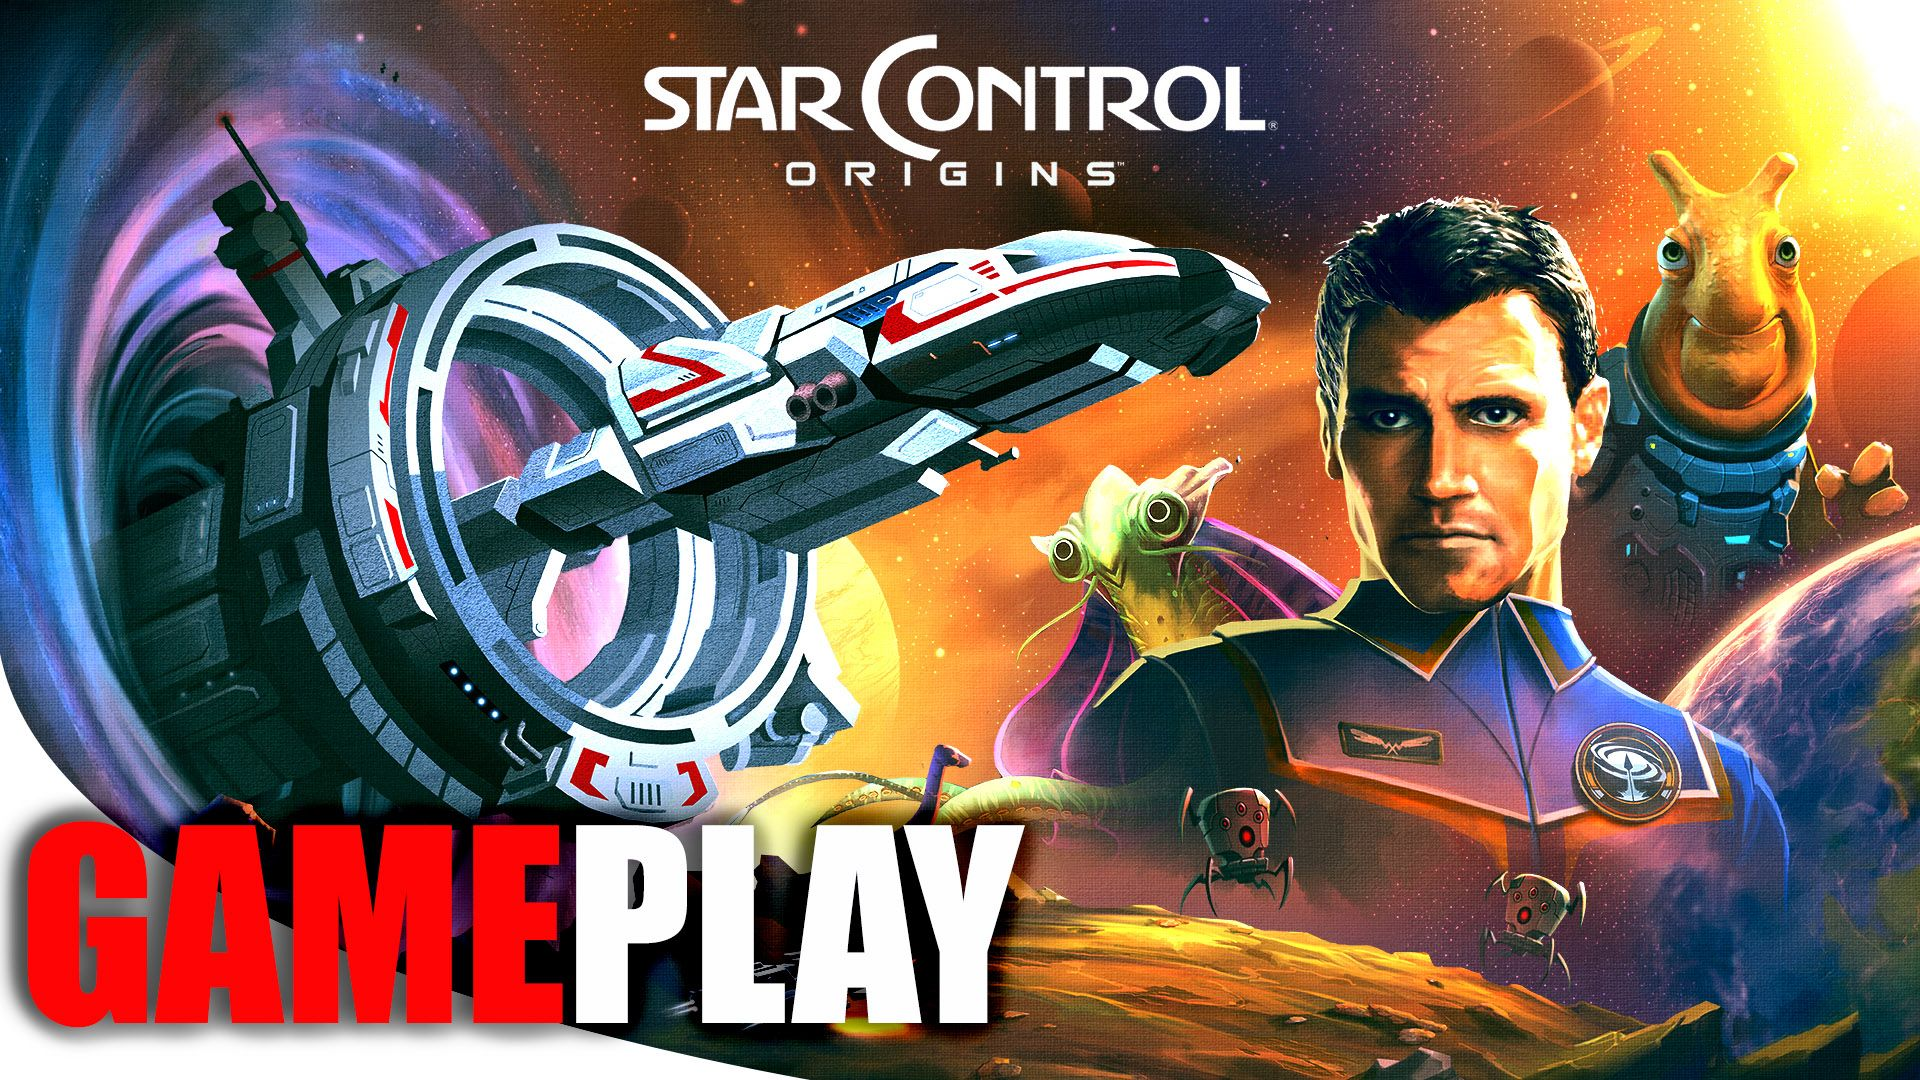 Star Control Origins is a space roleplaying game in which